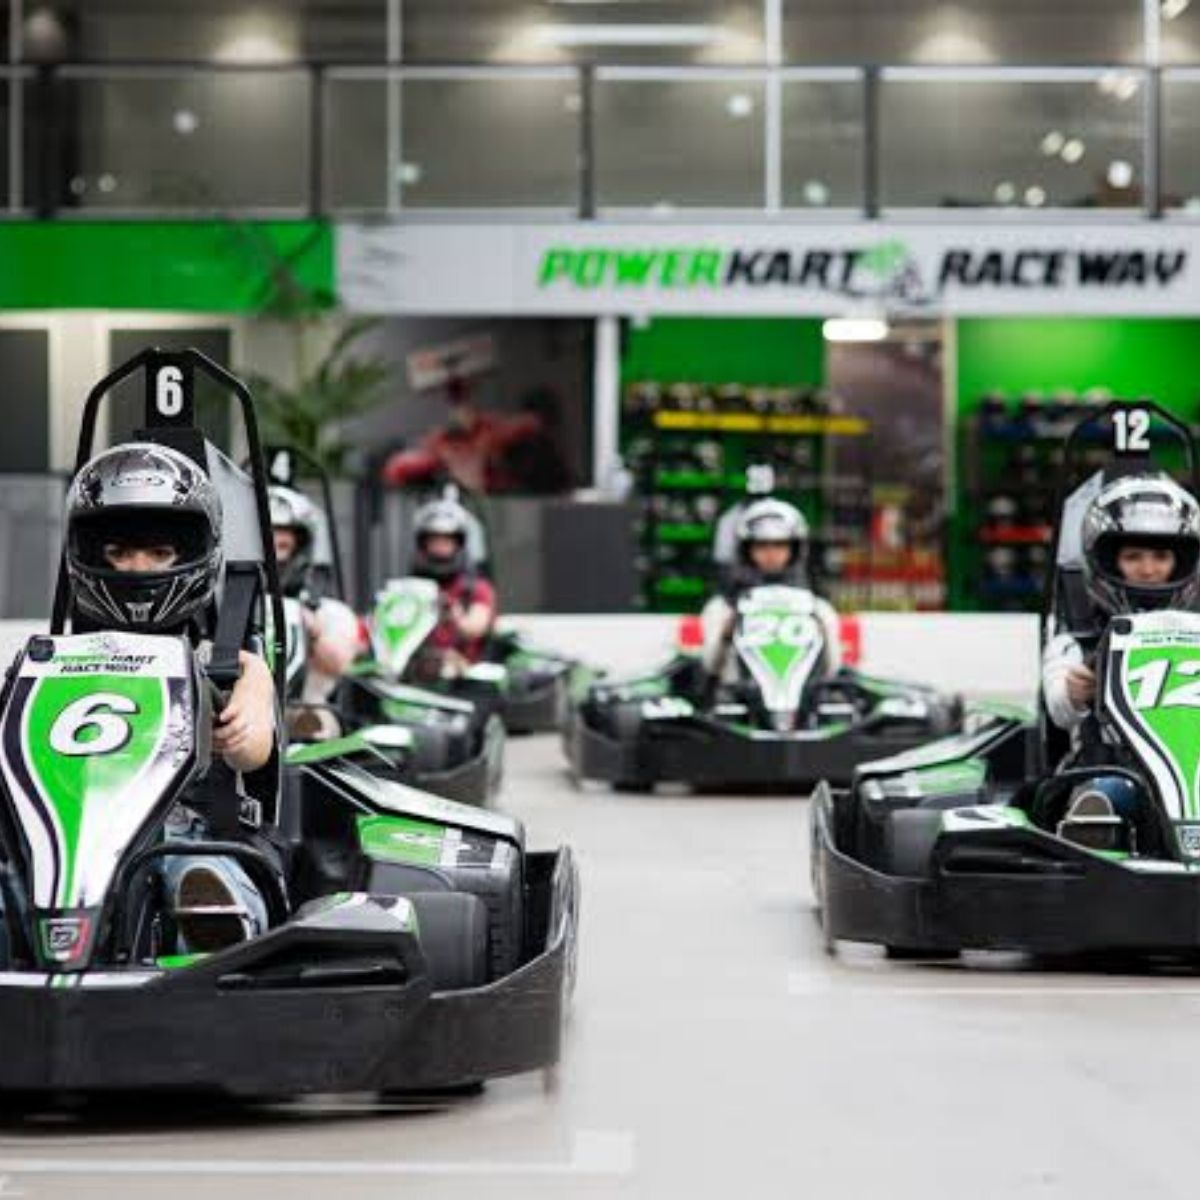 power kart raceway go karting experience indoor circuit canberra short term holiday accommodation griffith manuka fyshwick cars